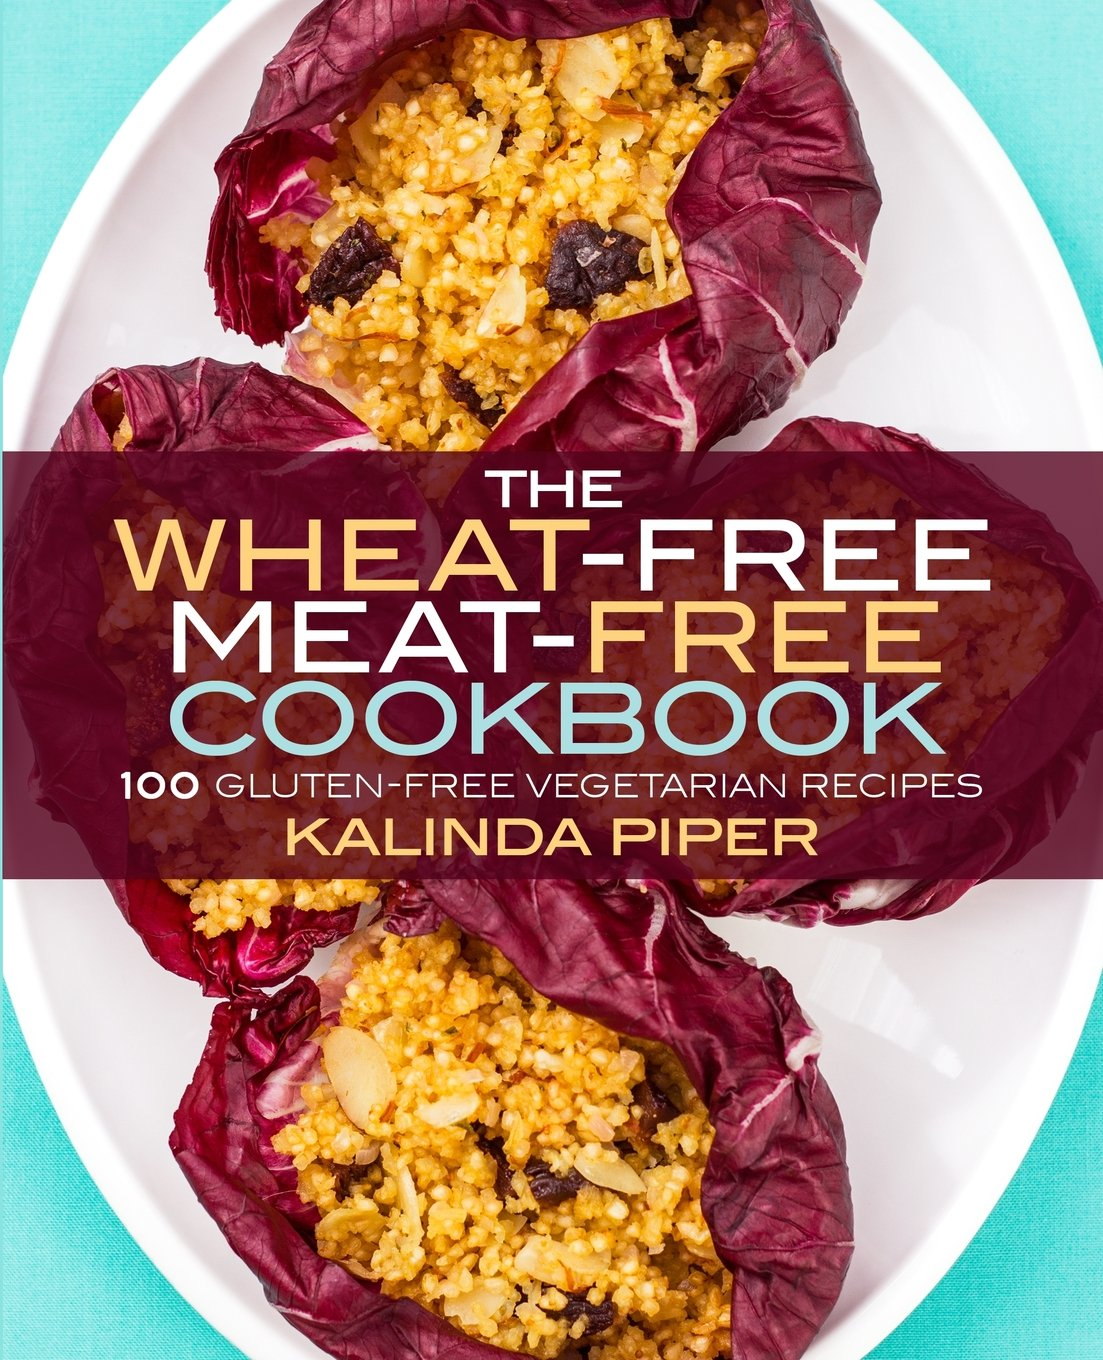 The wheat free meat free cookbook 100 gluten free vegetarian the wheat free meat free cookbook 100 gluten free vegetarian recipes kalinda piper 9780692233795 amazon books forumfinder